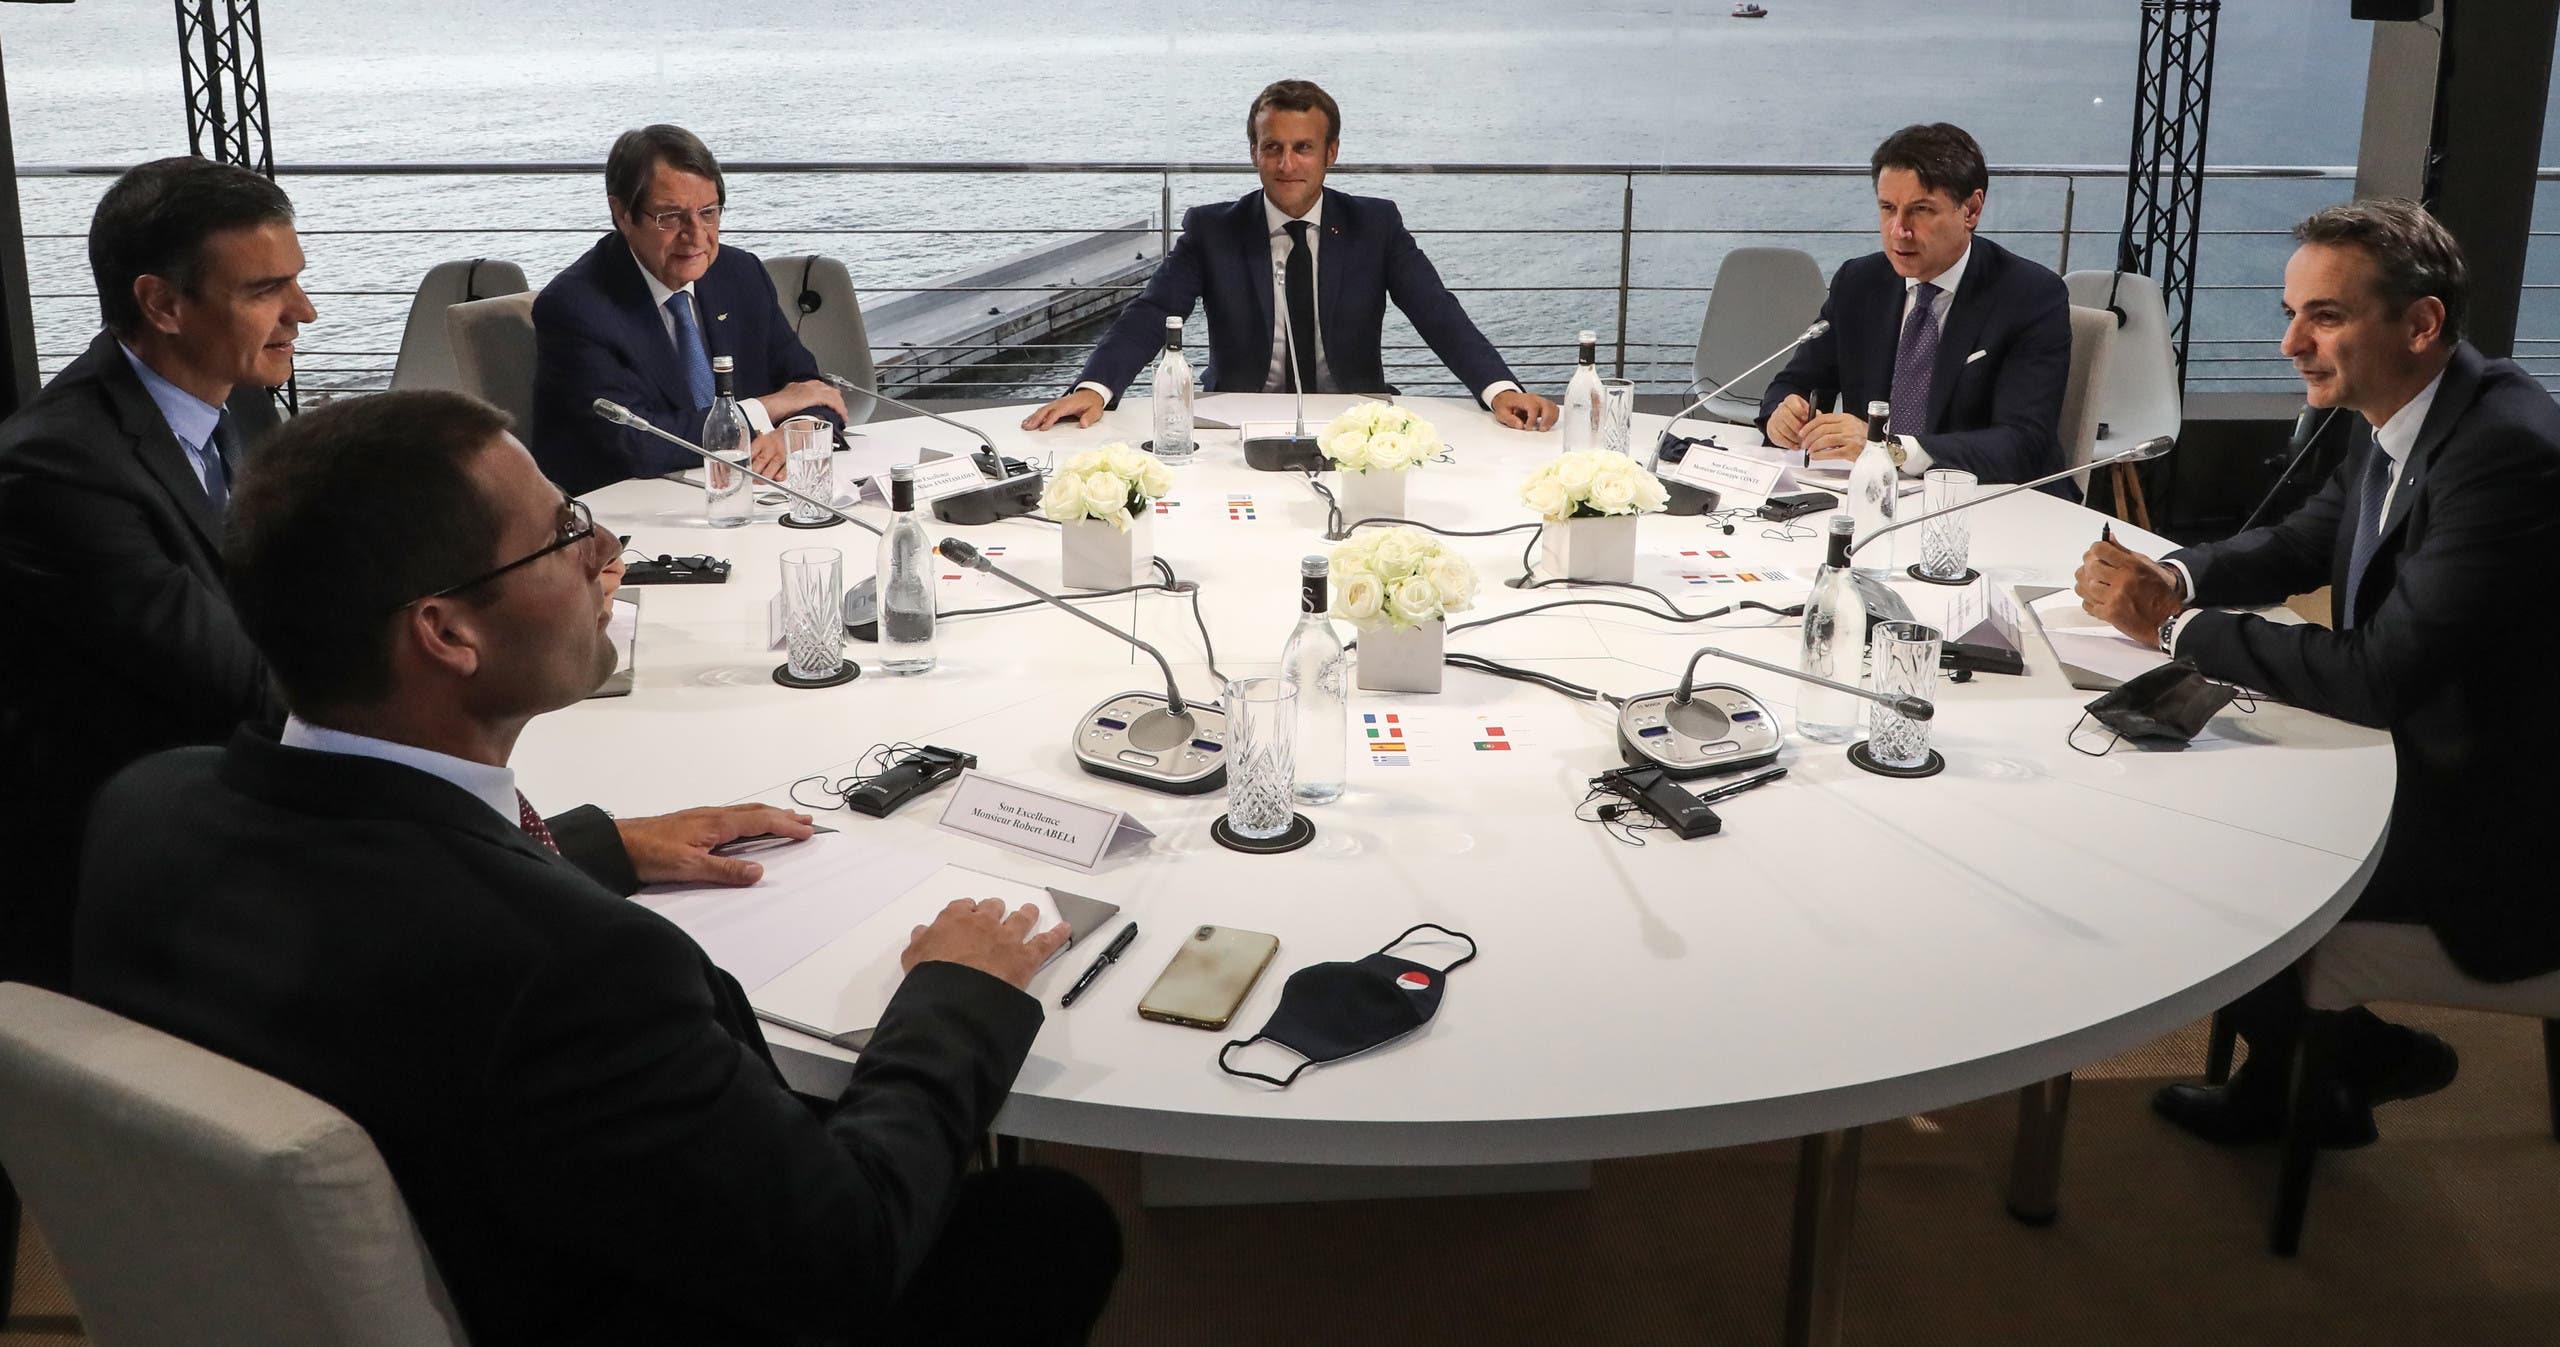 French President Emmanuel Macron (C) opens the plenary session of the seventh MED7 Mediterranean countries summit with (From L) Malta's Prime Minister Robert Abela, Spain's Prime Minister Pedro Sanchez, Cyprus President Nikos Anastasiadis, Italy's Prime Minister Giuseppe Conte and Greek Prime Minister Kyriakos Mitsotakis, on September 10, 2020 in Porticcio, Corsica. (AFP)